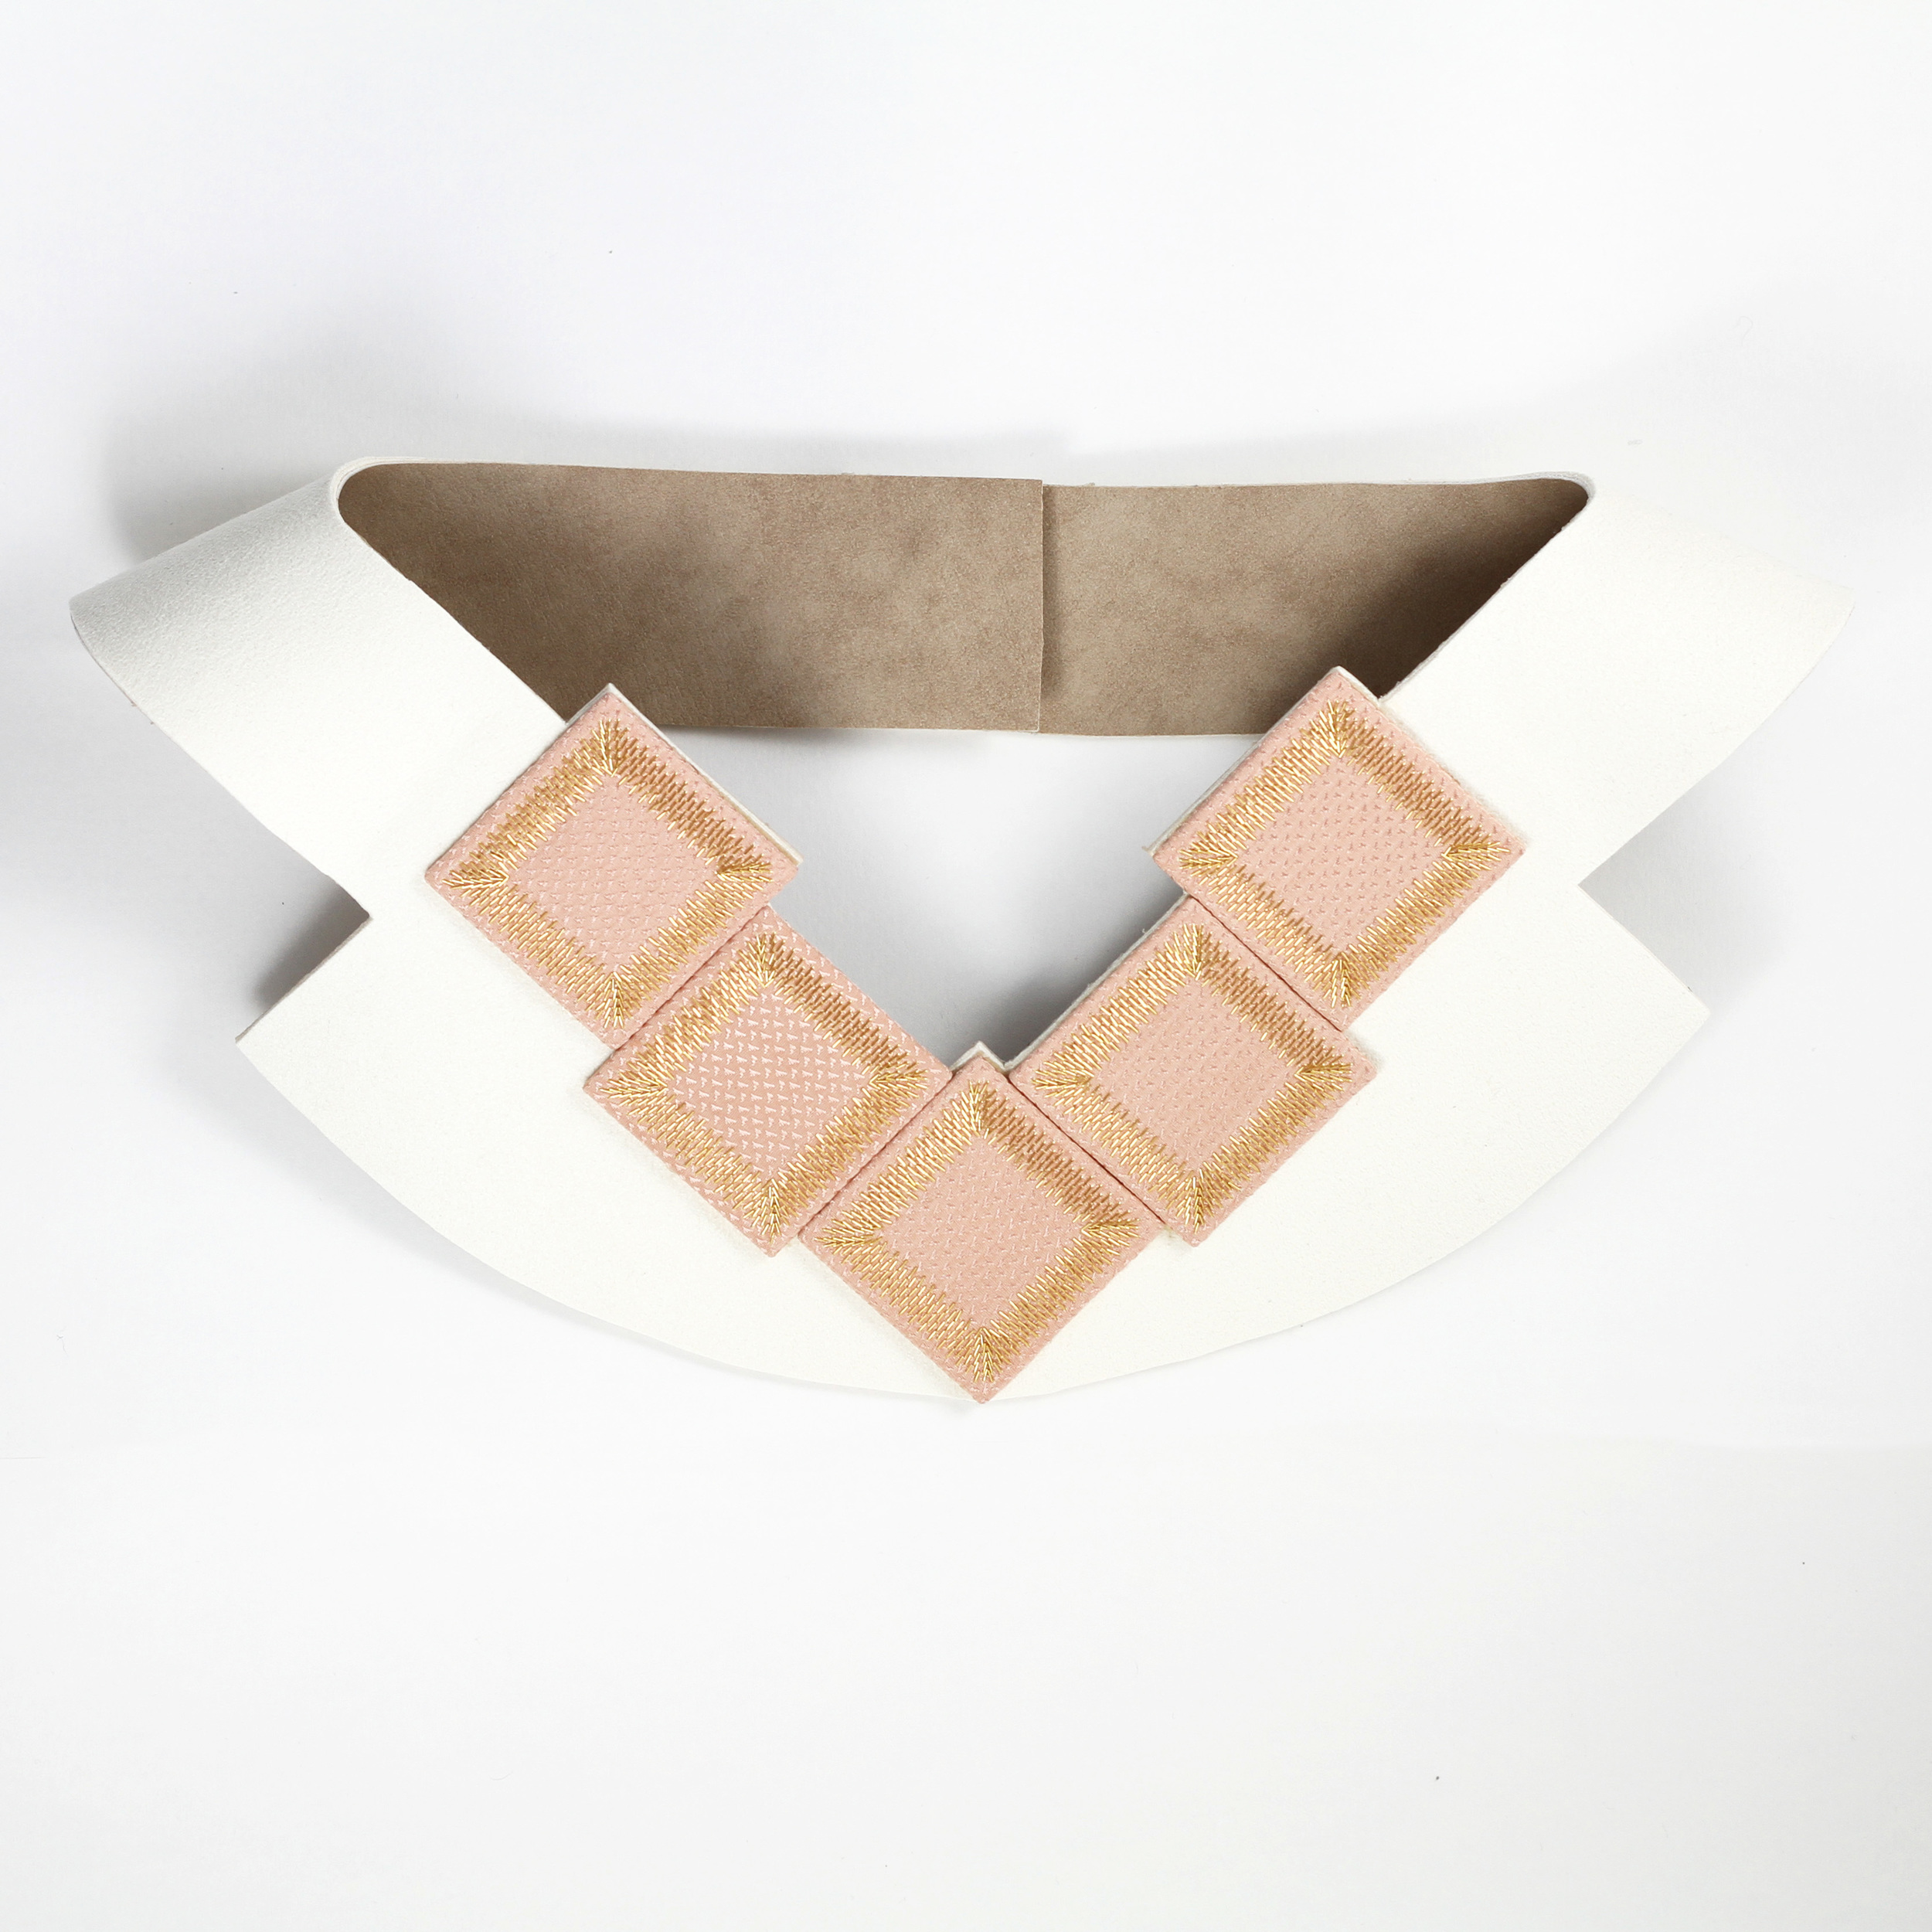 Kosmos-Collection-Isabel-Wong-Coral-Pink-Silk-White-Suede-Gold-Metal-Bib-Necklace-Consequence.JPG